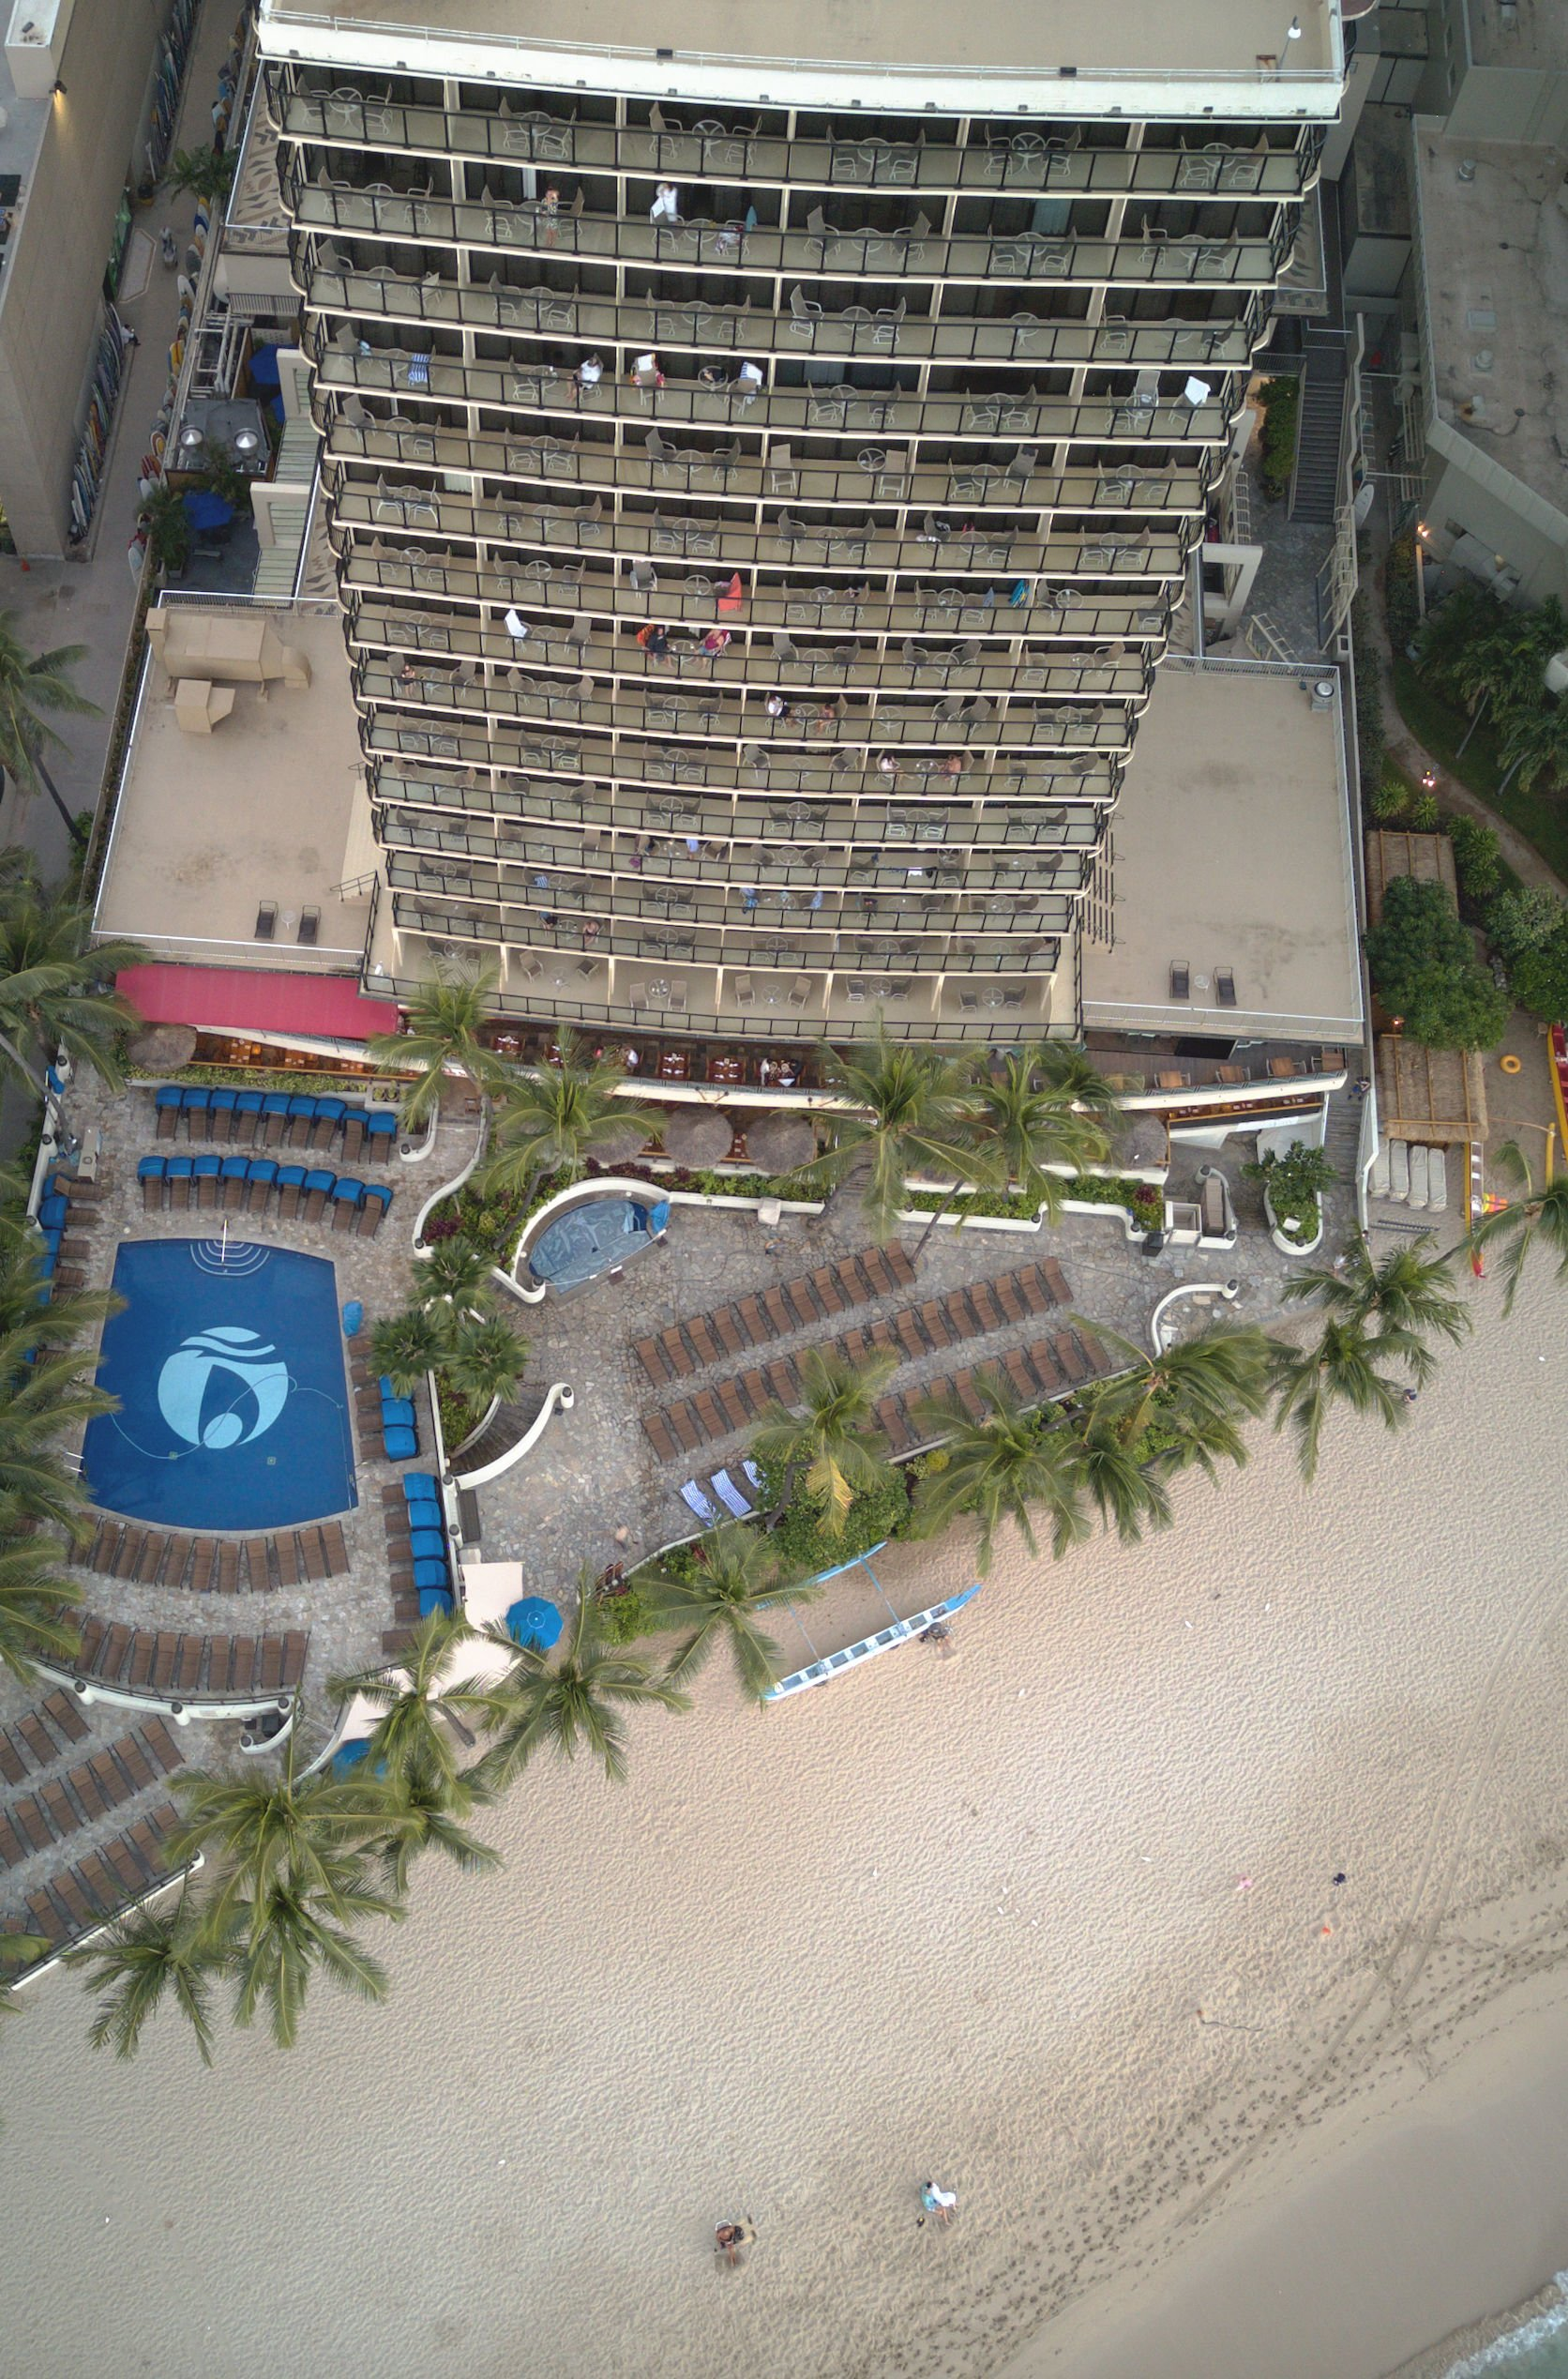 Our Stay At Outrigger Waikiki Beach Resort | Outrigger Waikiki On The Beach - Outrigger Waikiki - Outrigger Waikiki Beach Resort - Outrigger Reef Waikiki - Outrigger Hotel Review - Waikiki Hotels - Waikiki Beach Hotels - Hawaii Vacation Planning - Where to stay on Oahu - Where to stay in Honolulu - Honolulu Vacation #hawaii #oahu #outriggerwaikiki